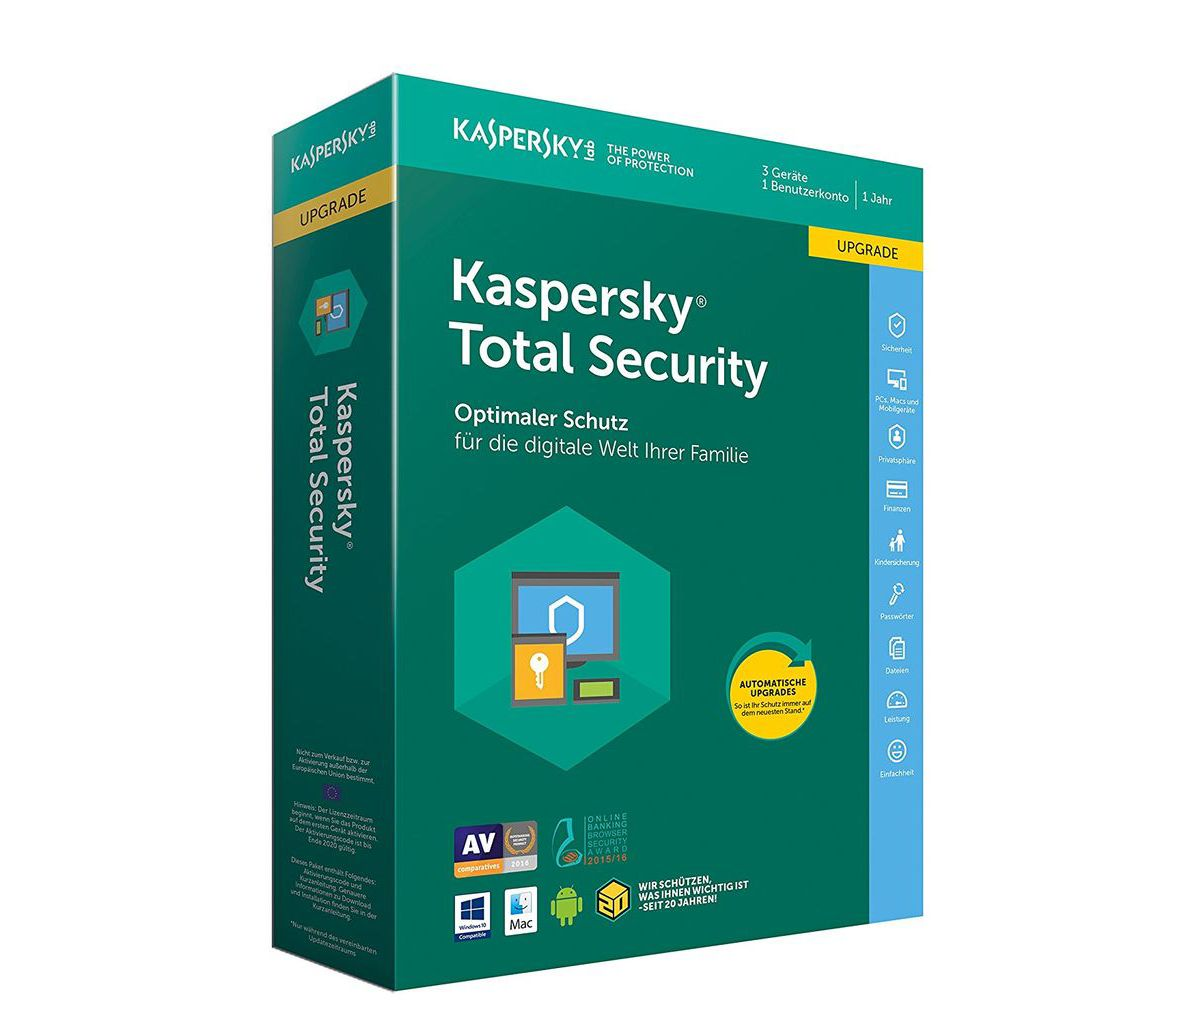 Kaspersky Software »Kaspersky Total Security Up...